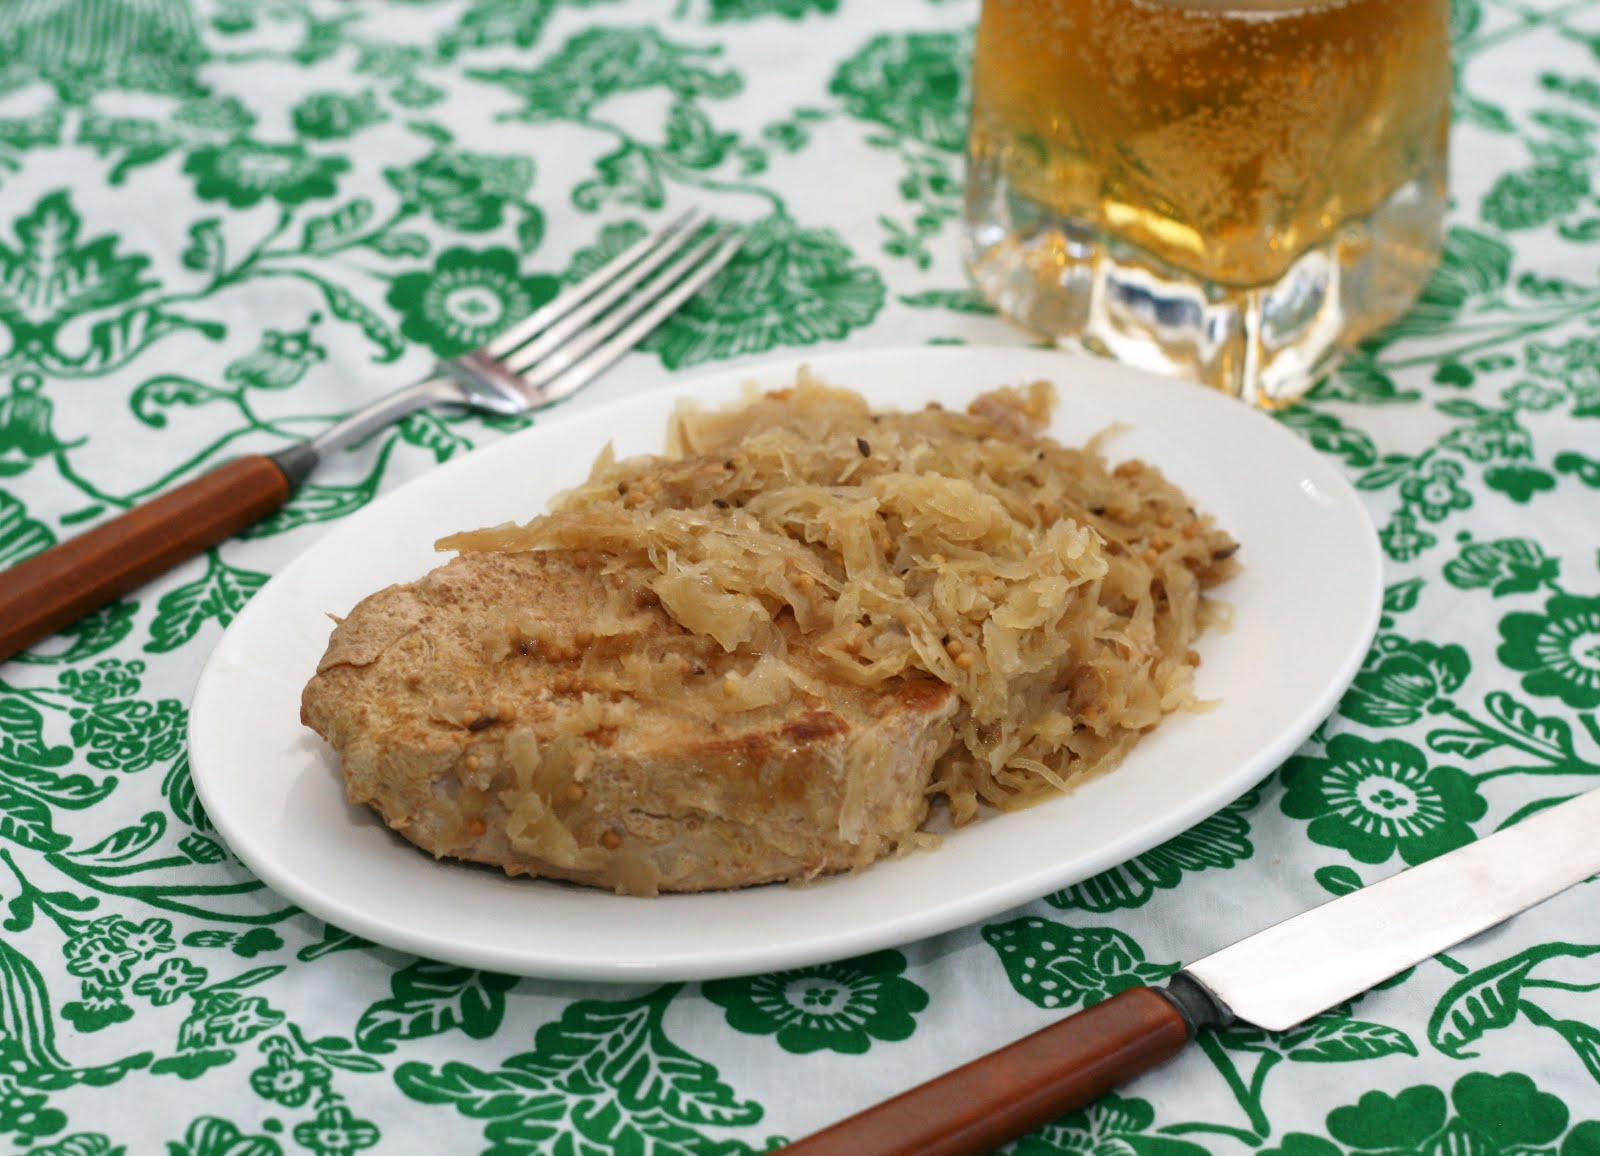 ... // recipes by Rachel Rappaport: Slow Cooker Pork Chops & Sauerkraut